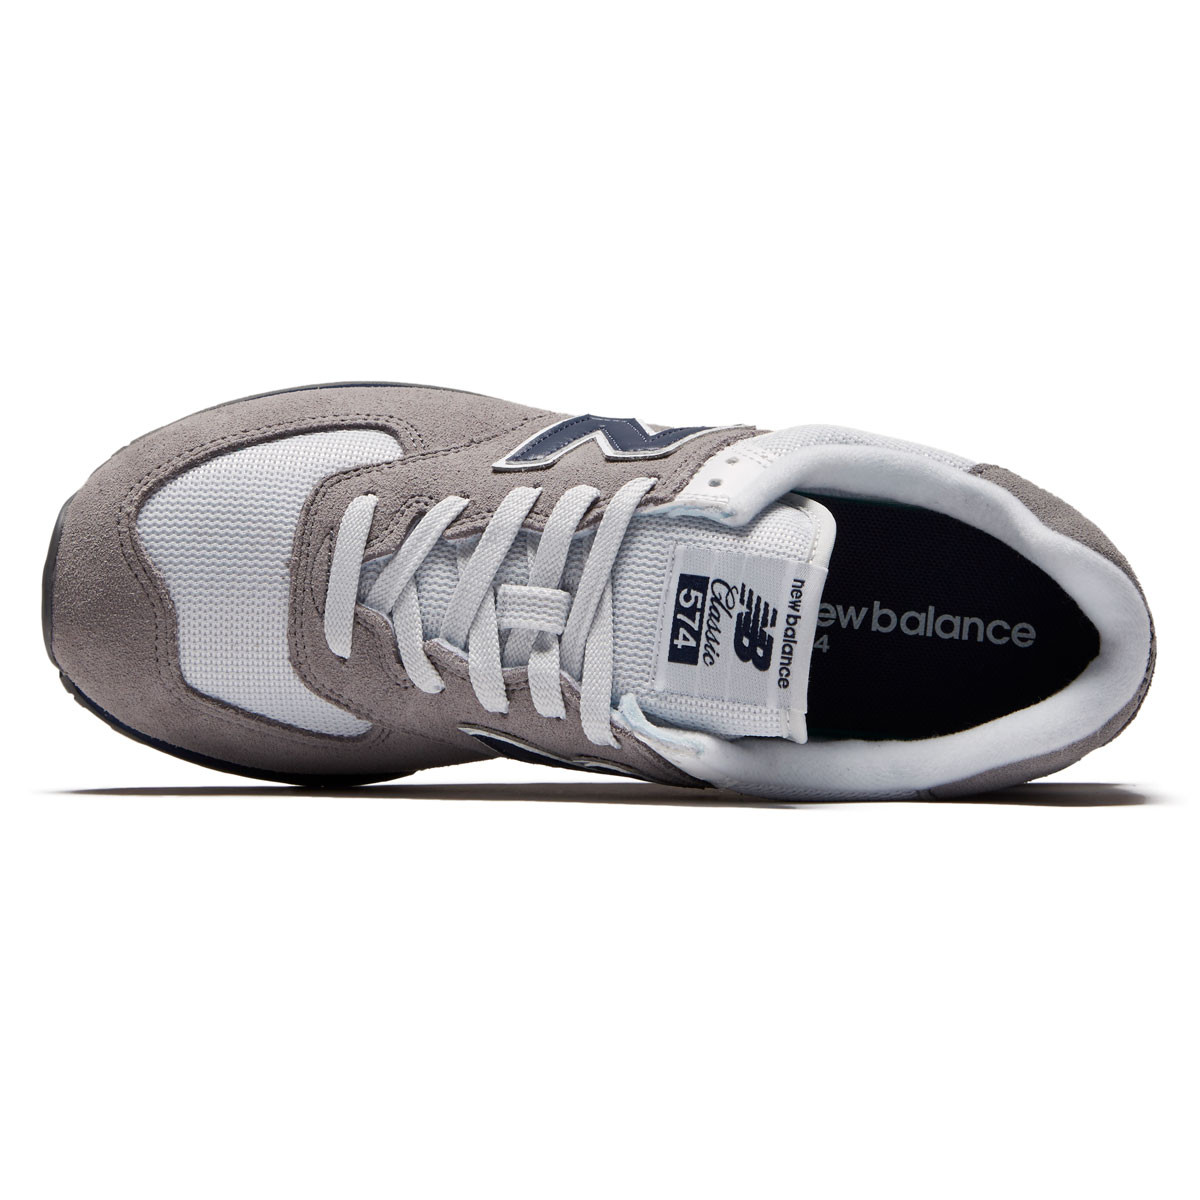 1f21e4cb8a5 New Balance 574 NB Core Plus Shoes - Gunmetal Navy - 10.0